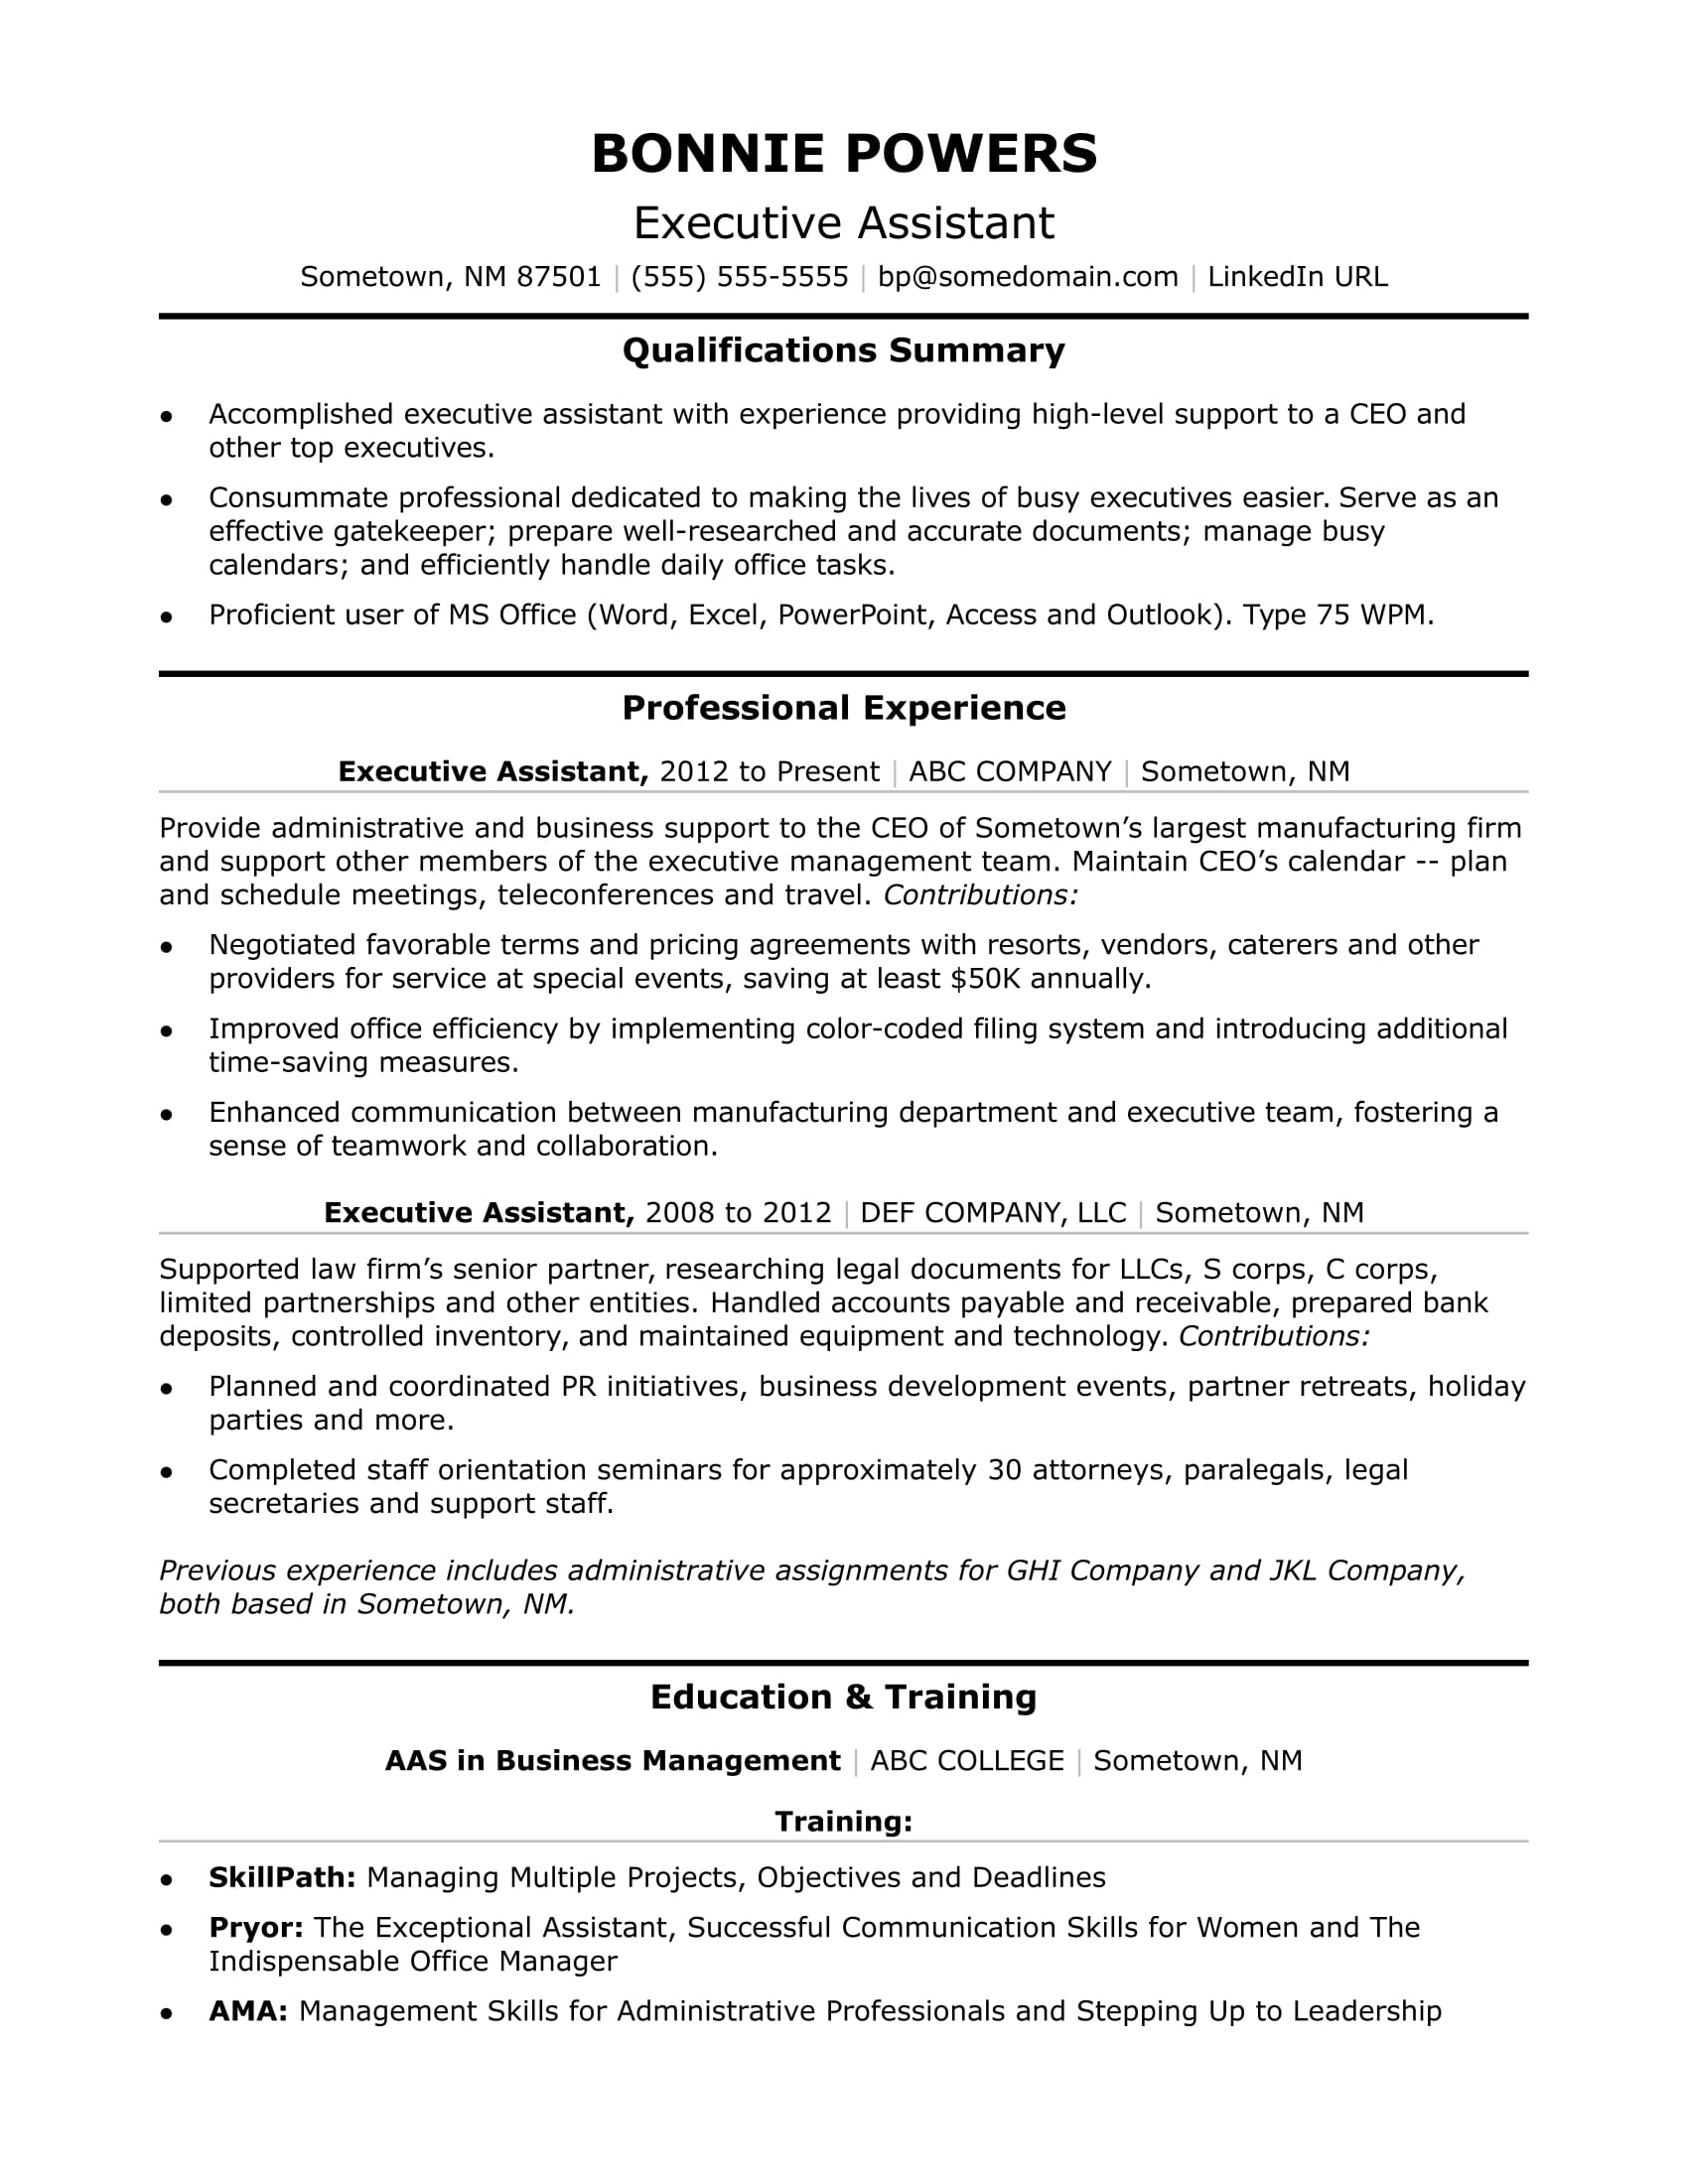 executive administrative assistant resume sample monster profile data analyst skills Resume Administrative Assistant Resume Profile